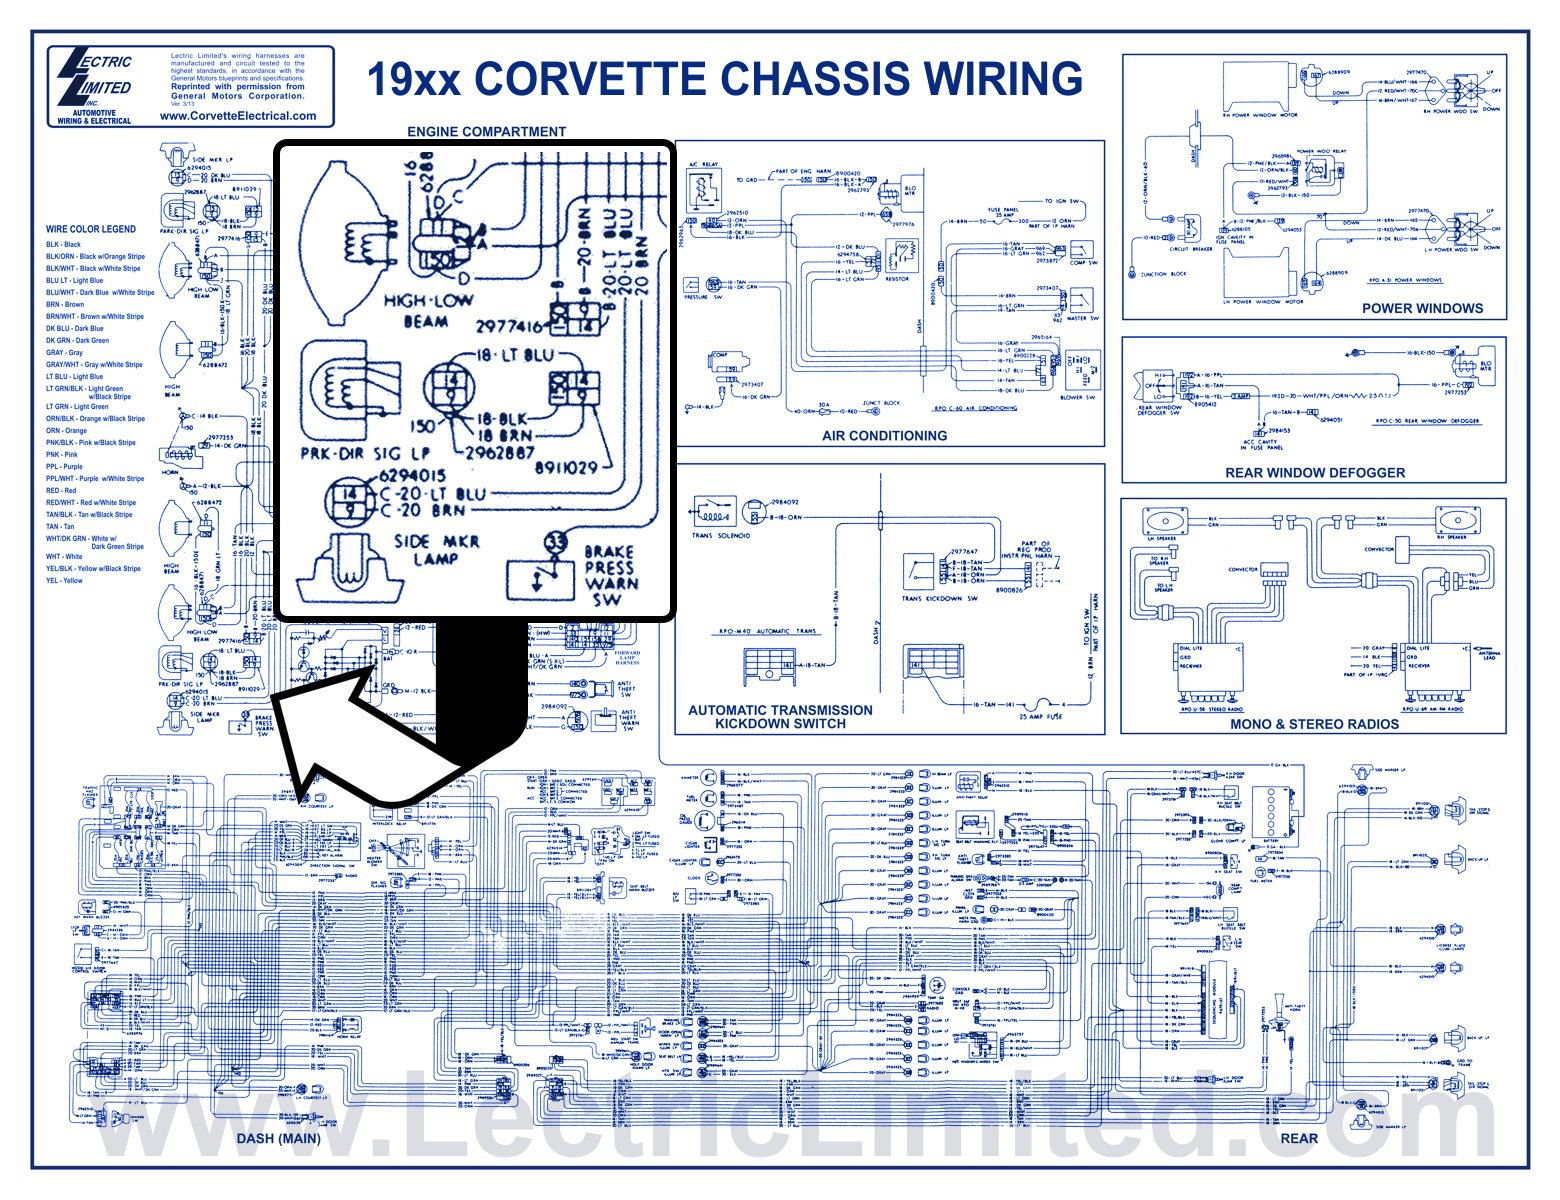 1967 Corvette Dash Wiring Schematic Best Electrical Circuit 1968 Harness Miscellaneous Products Rh Lectriclimited Com 1974 Schematics